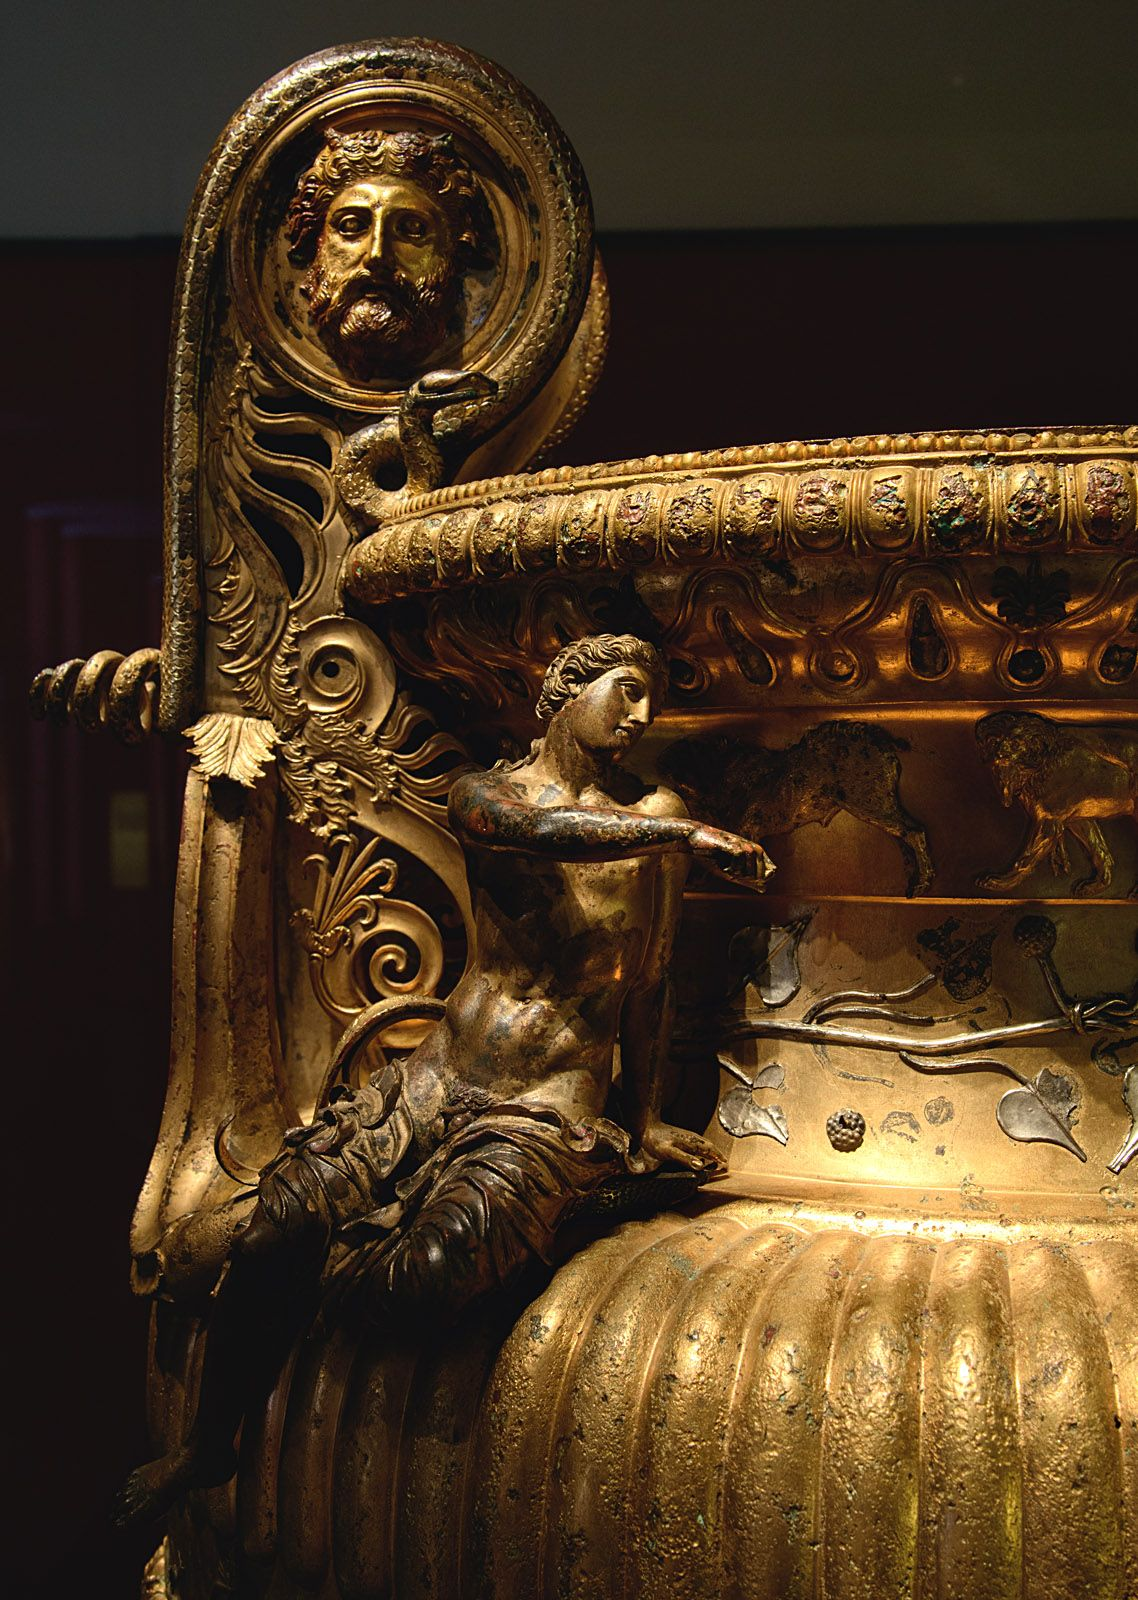 Dionysus. Close up of The Derveni krater. Bronze. 330—320 BCE. Inv. No. B1. Thessaloniki, Archaeological Museum. (Photo by I. Sh.).